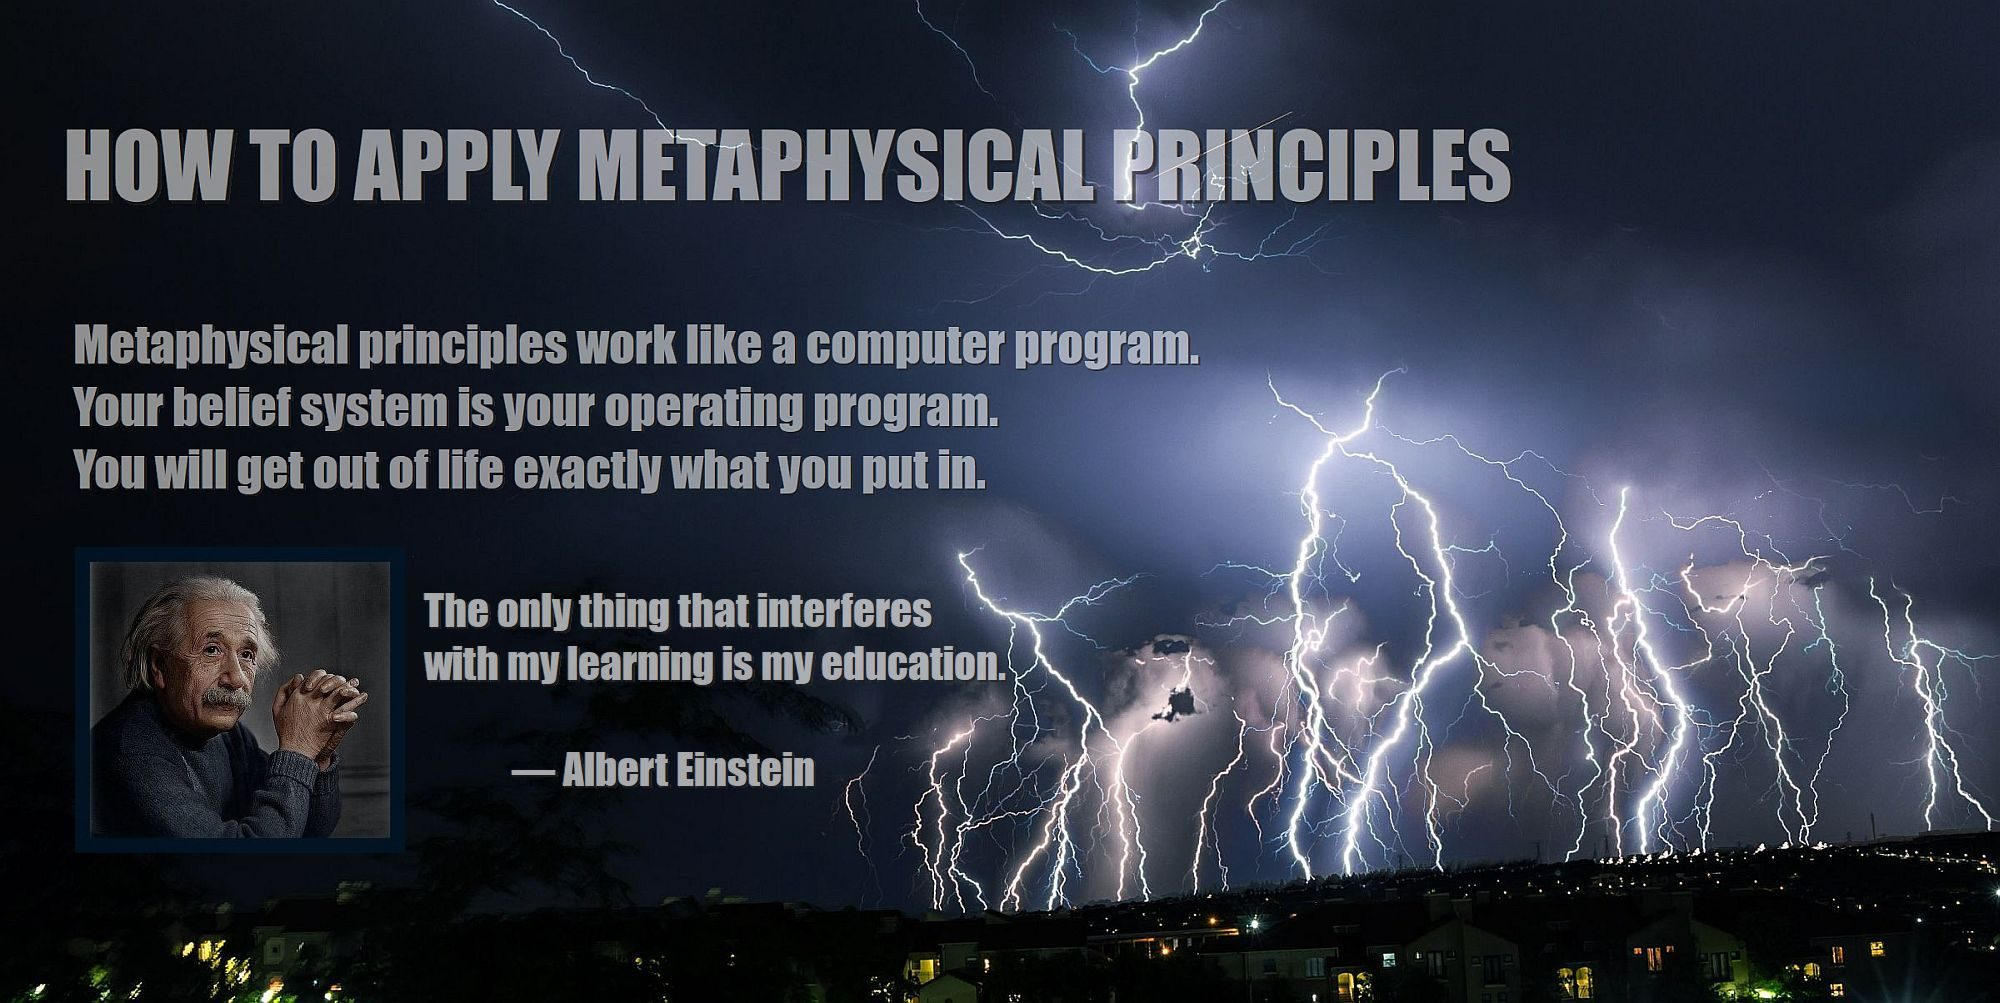 Mind-Over-Matter-Theory-Science-Fact-Fiction-How-to-Apply-Metaphysical-Principles-2a-2000